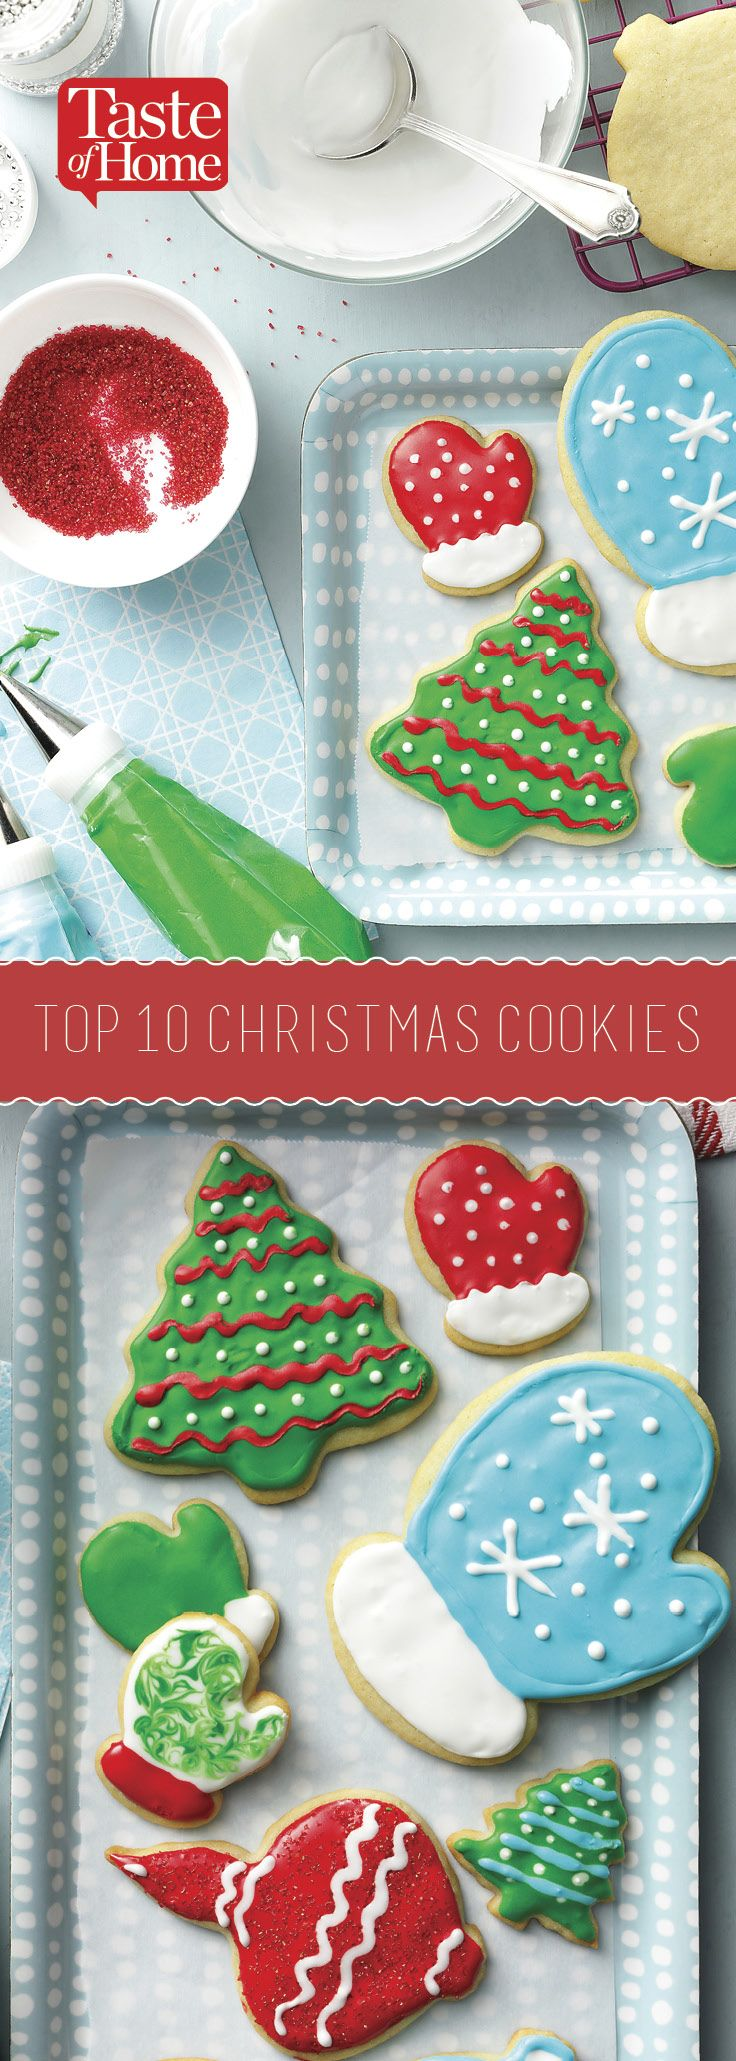 Top 10 Christmas Cookies (from Taste of Home)